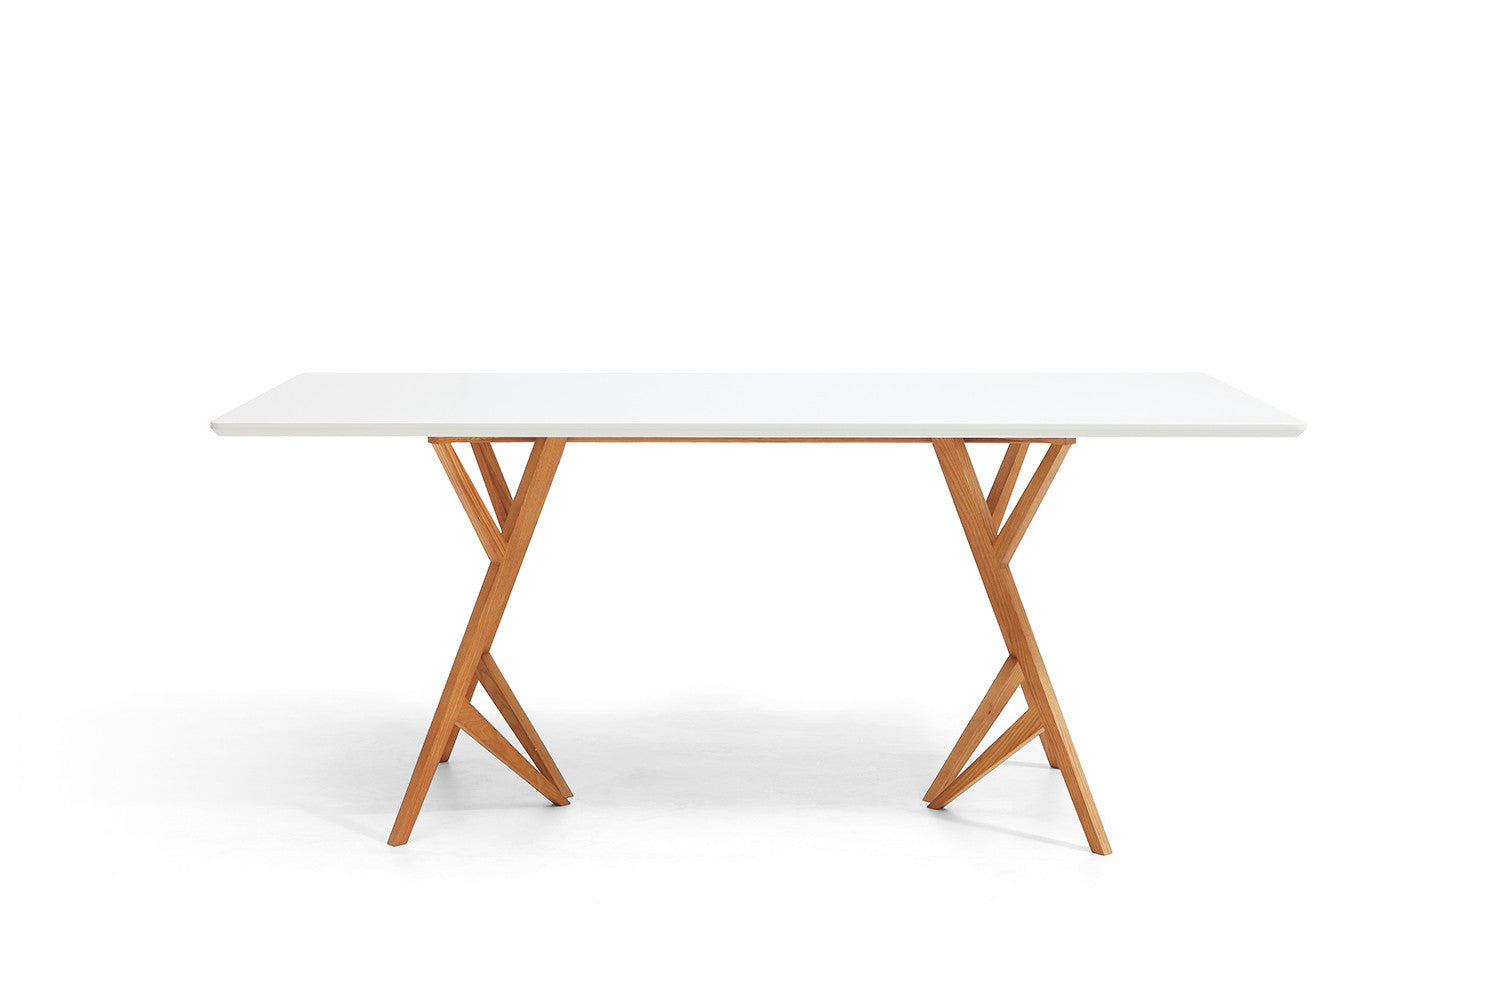 Table de salle manger design scandinave vispa dewarens for Table design salle a manger